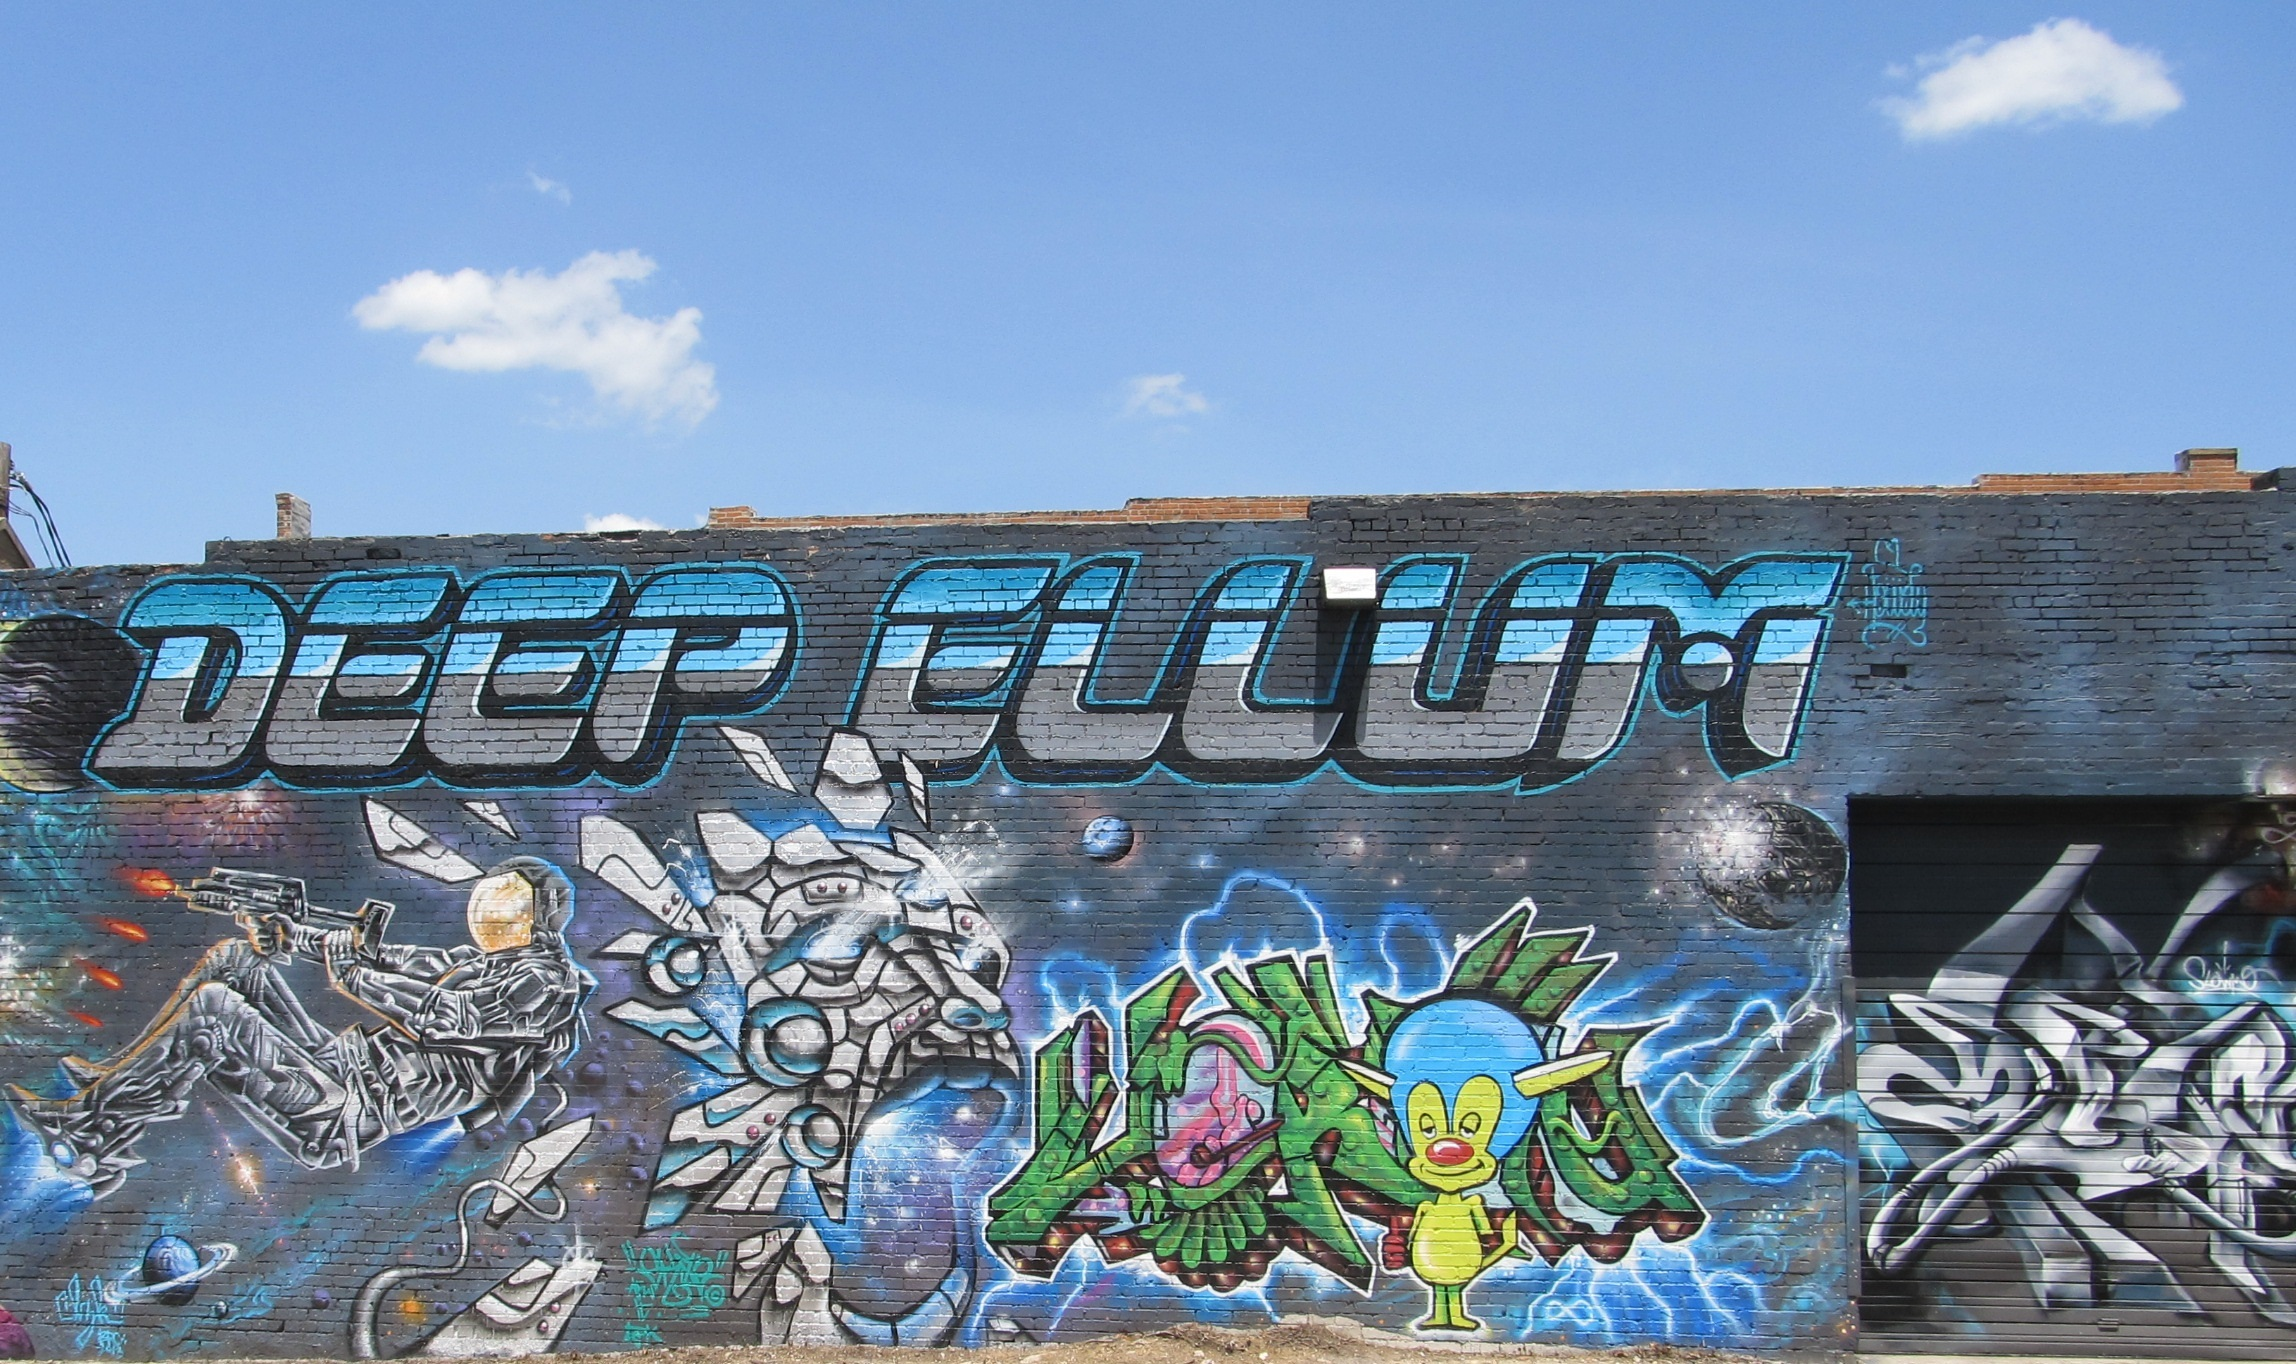 Graffiti wall dallas - Since You Re In Deep Ellum Do Yourself A Favor And Check Out The Neighborhood It S One Of The Few Neighborhoods Where Graffiti Is Encouraged So There S A